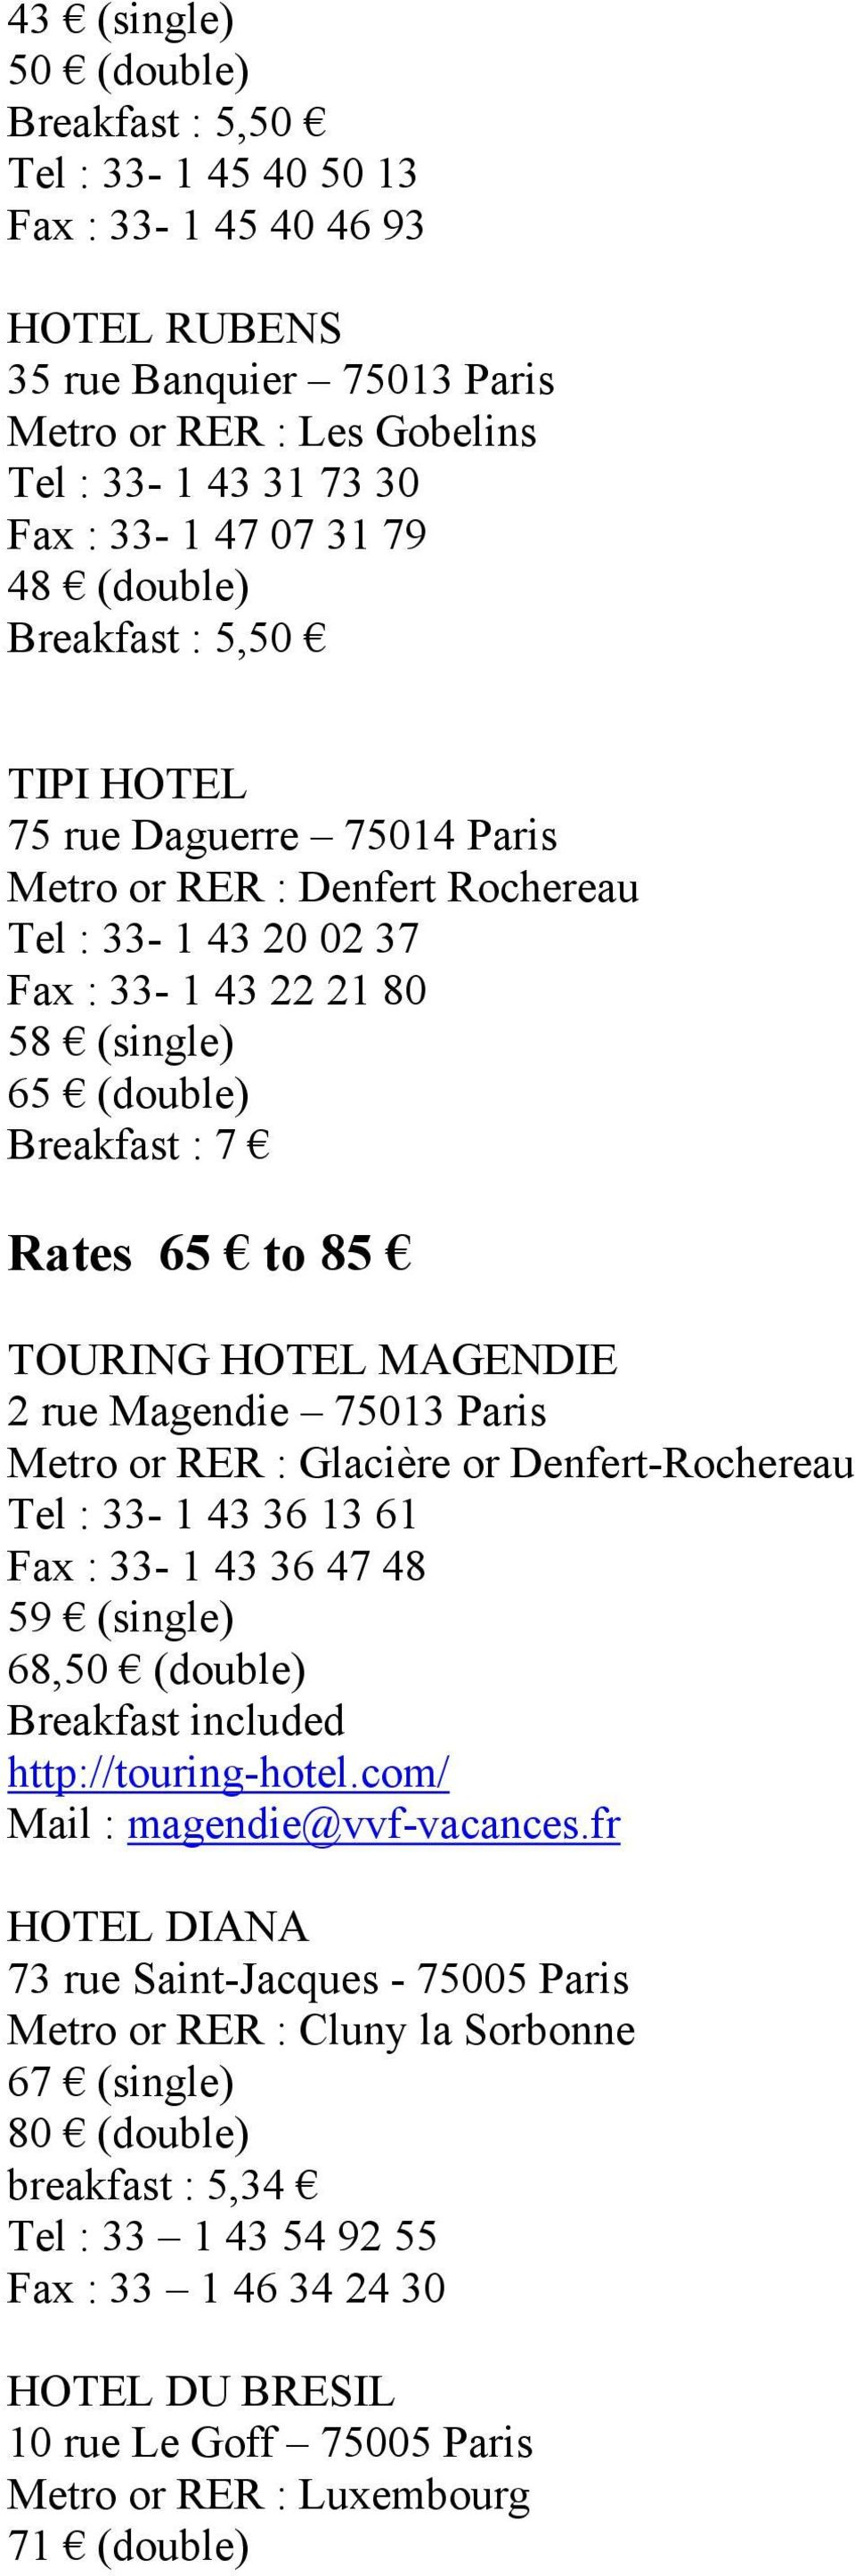 85 TOURING HOTEL MAGENDIE 2 rue Magendie 75013 Paris Metro or RER : Glacière or Denfert-Rochereau Tel : 33-1 43 36 13 61 Fax : 33-1 43 36 47 48 59 (single) 68,50 (double) Breakfast included